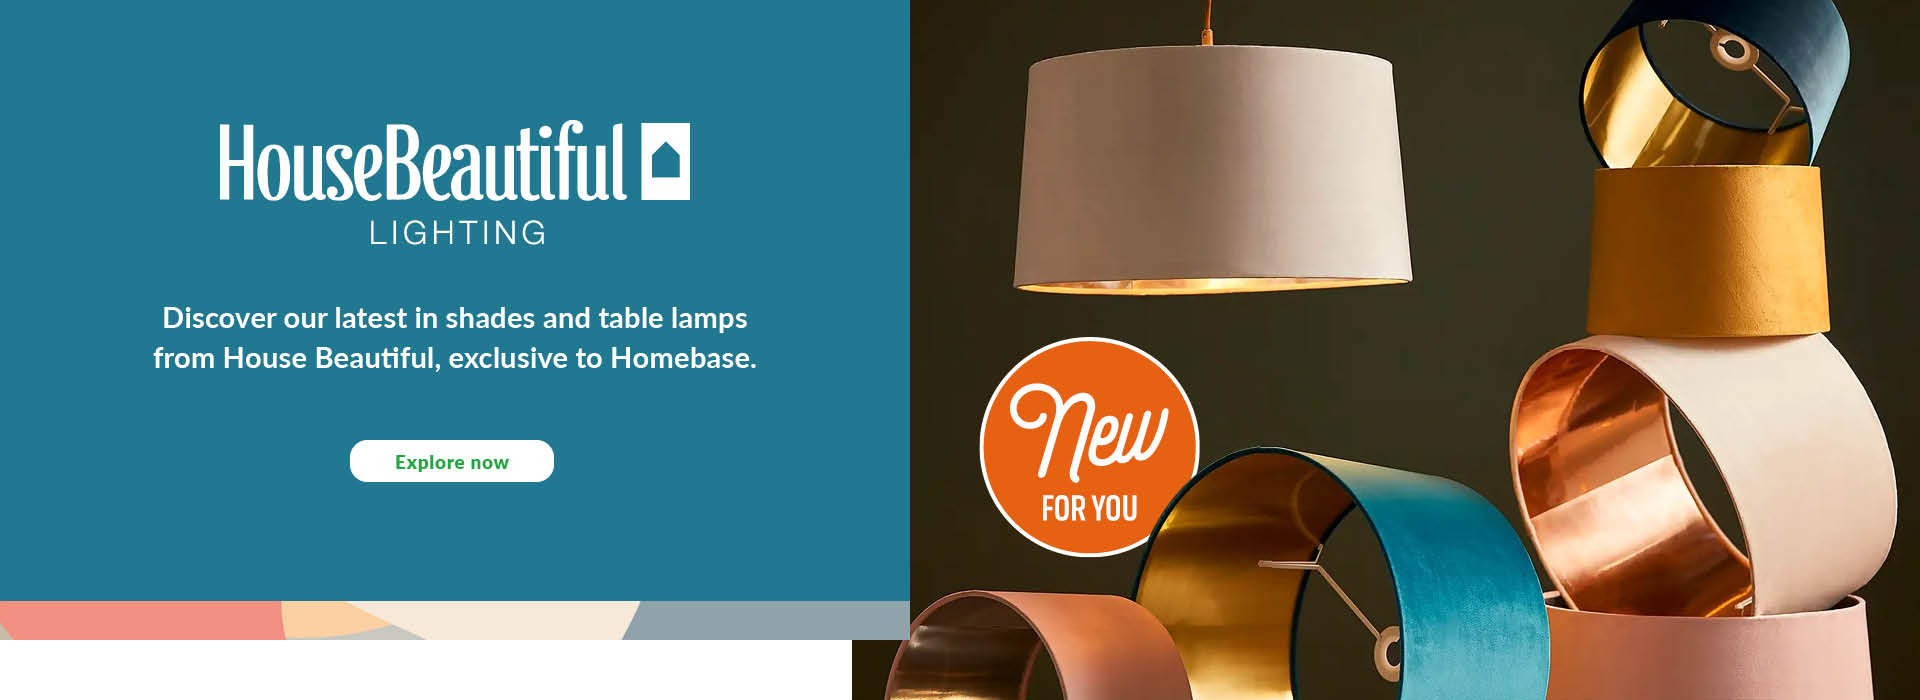 House Beautiful - discover our latest in shades and table lamps from House Beautiful, exclusive to Homebase. Explore Now